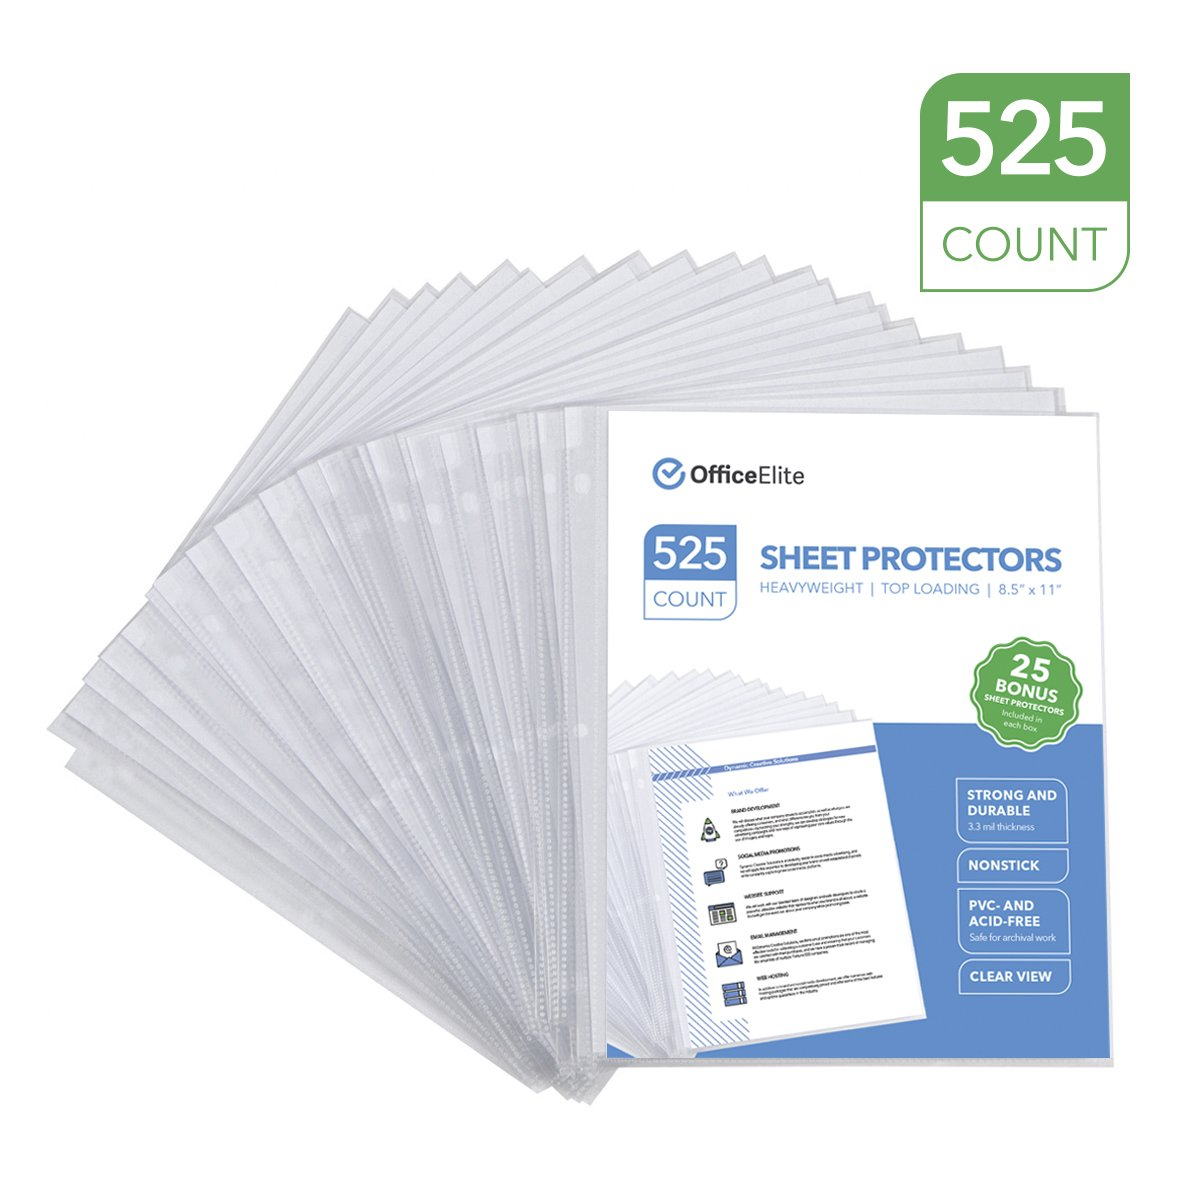 """525 Clear Heavyweight Sheet Protectors - 3.3 MIL Thickness - Reinforced 3 Hole Design - Protects Photos and 8.5"""" x 11"""" Documents - Top Loading - Archival Safe - PVC and Acid Free - Box of 525"""